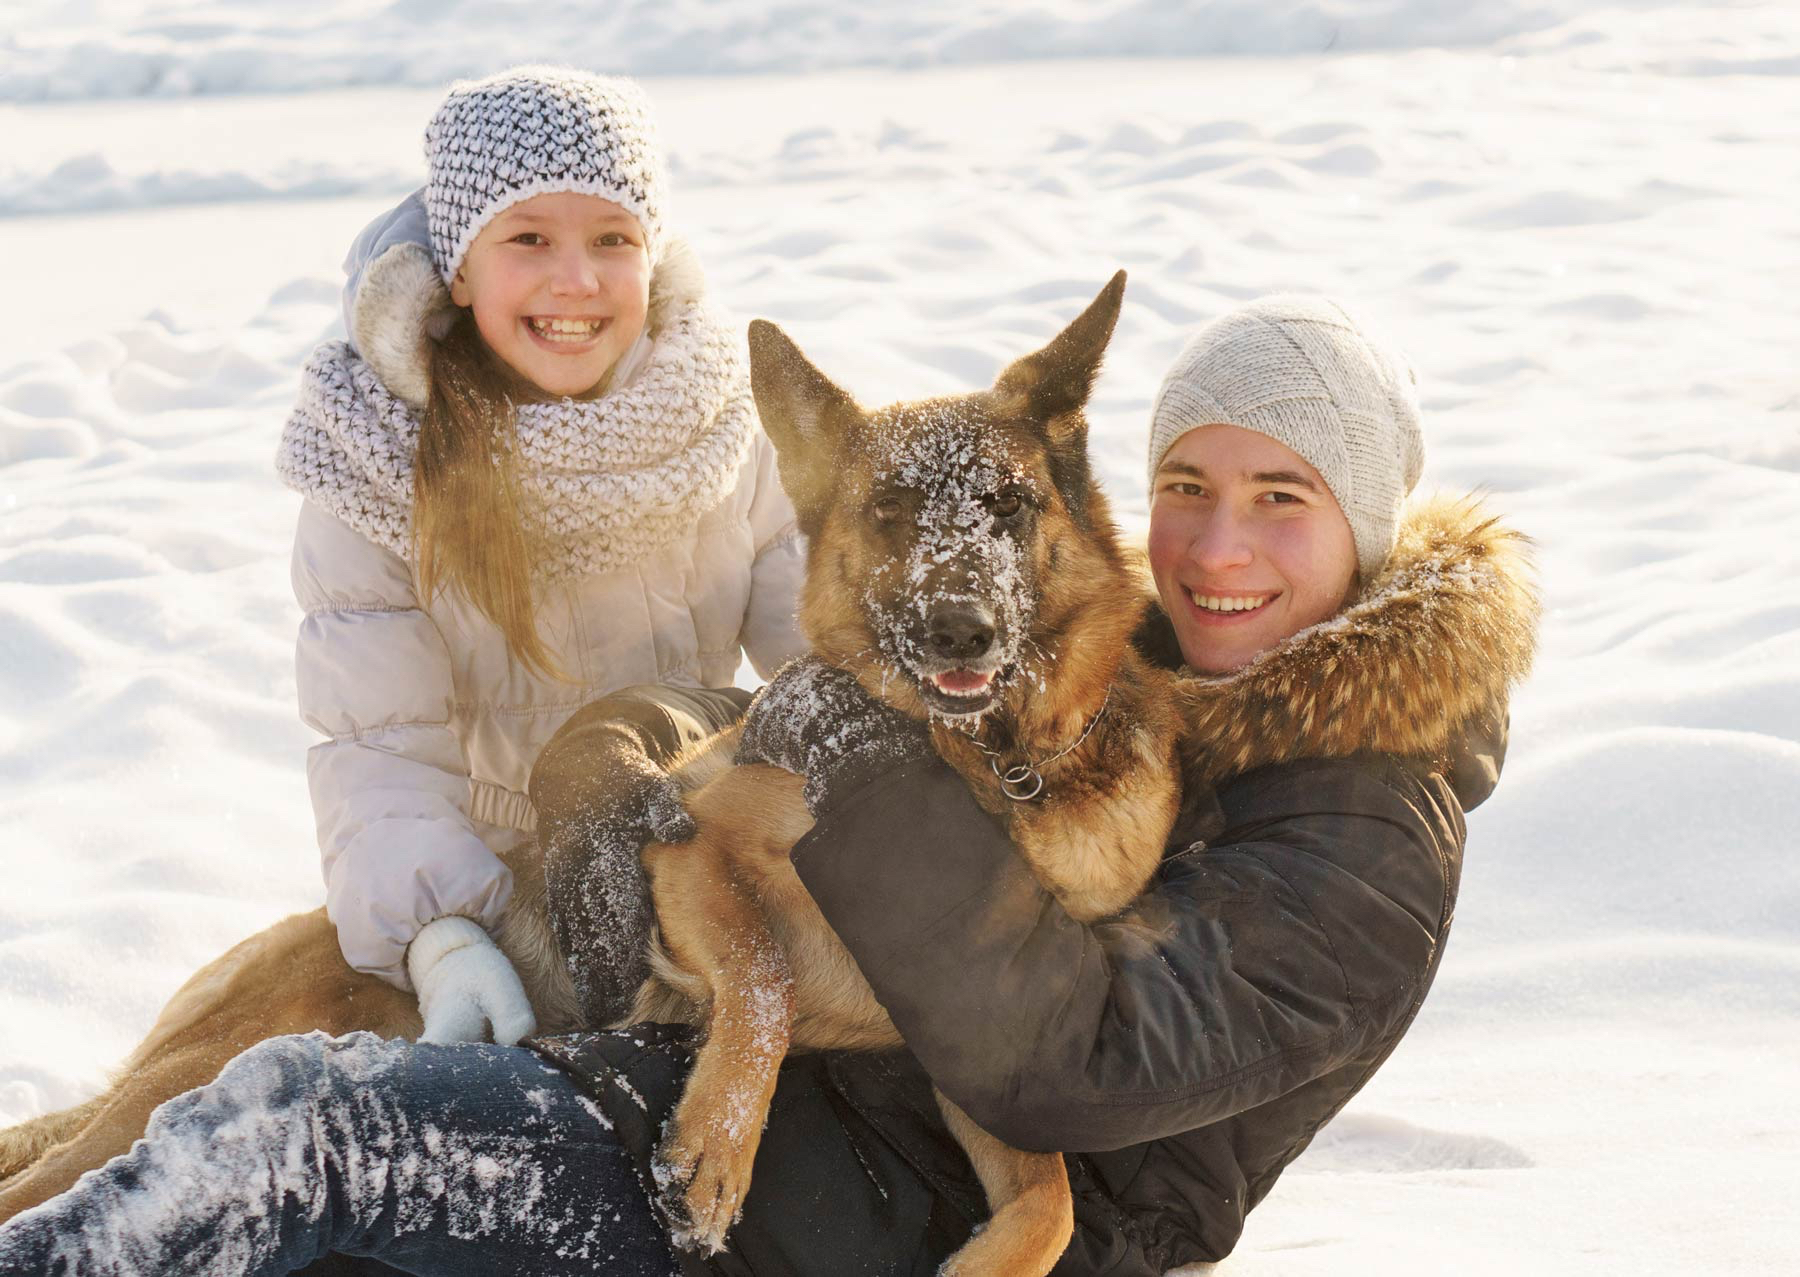 Winter Holiday Wellbeing for YOU and Your Loved Ones